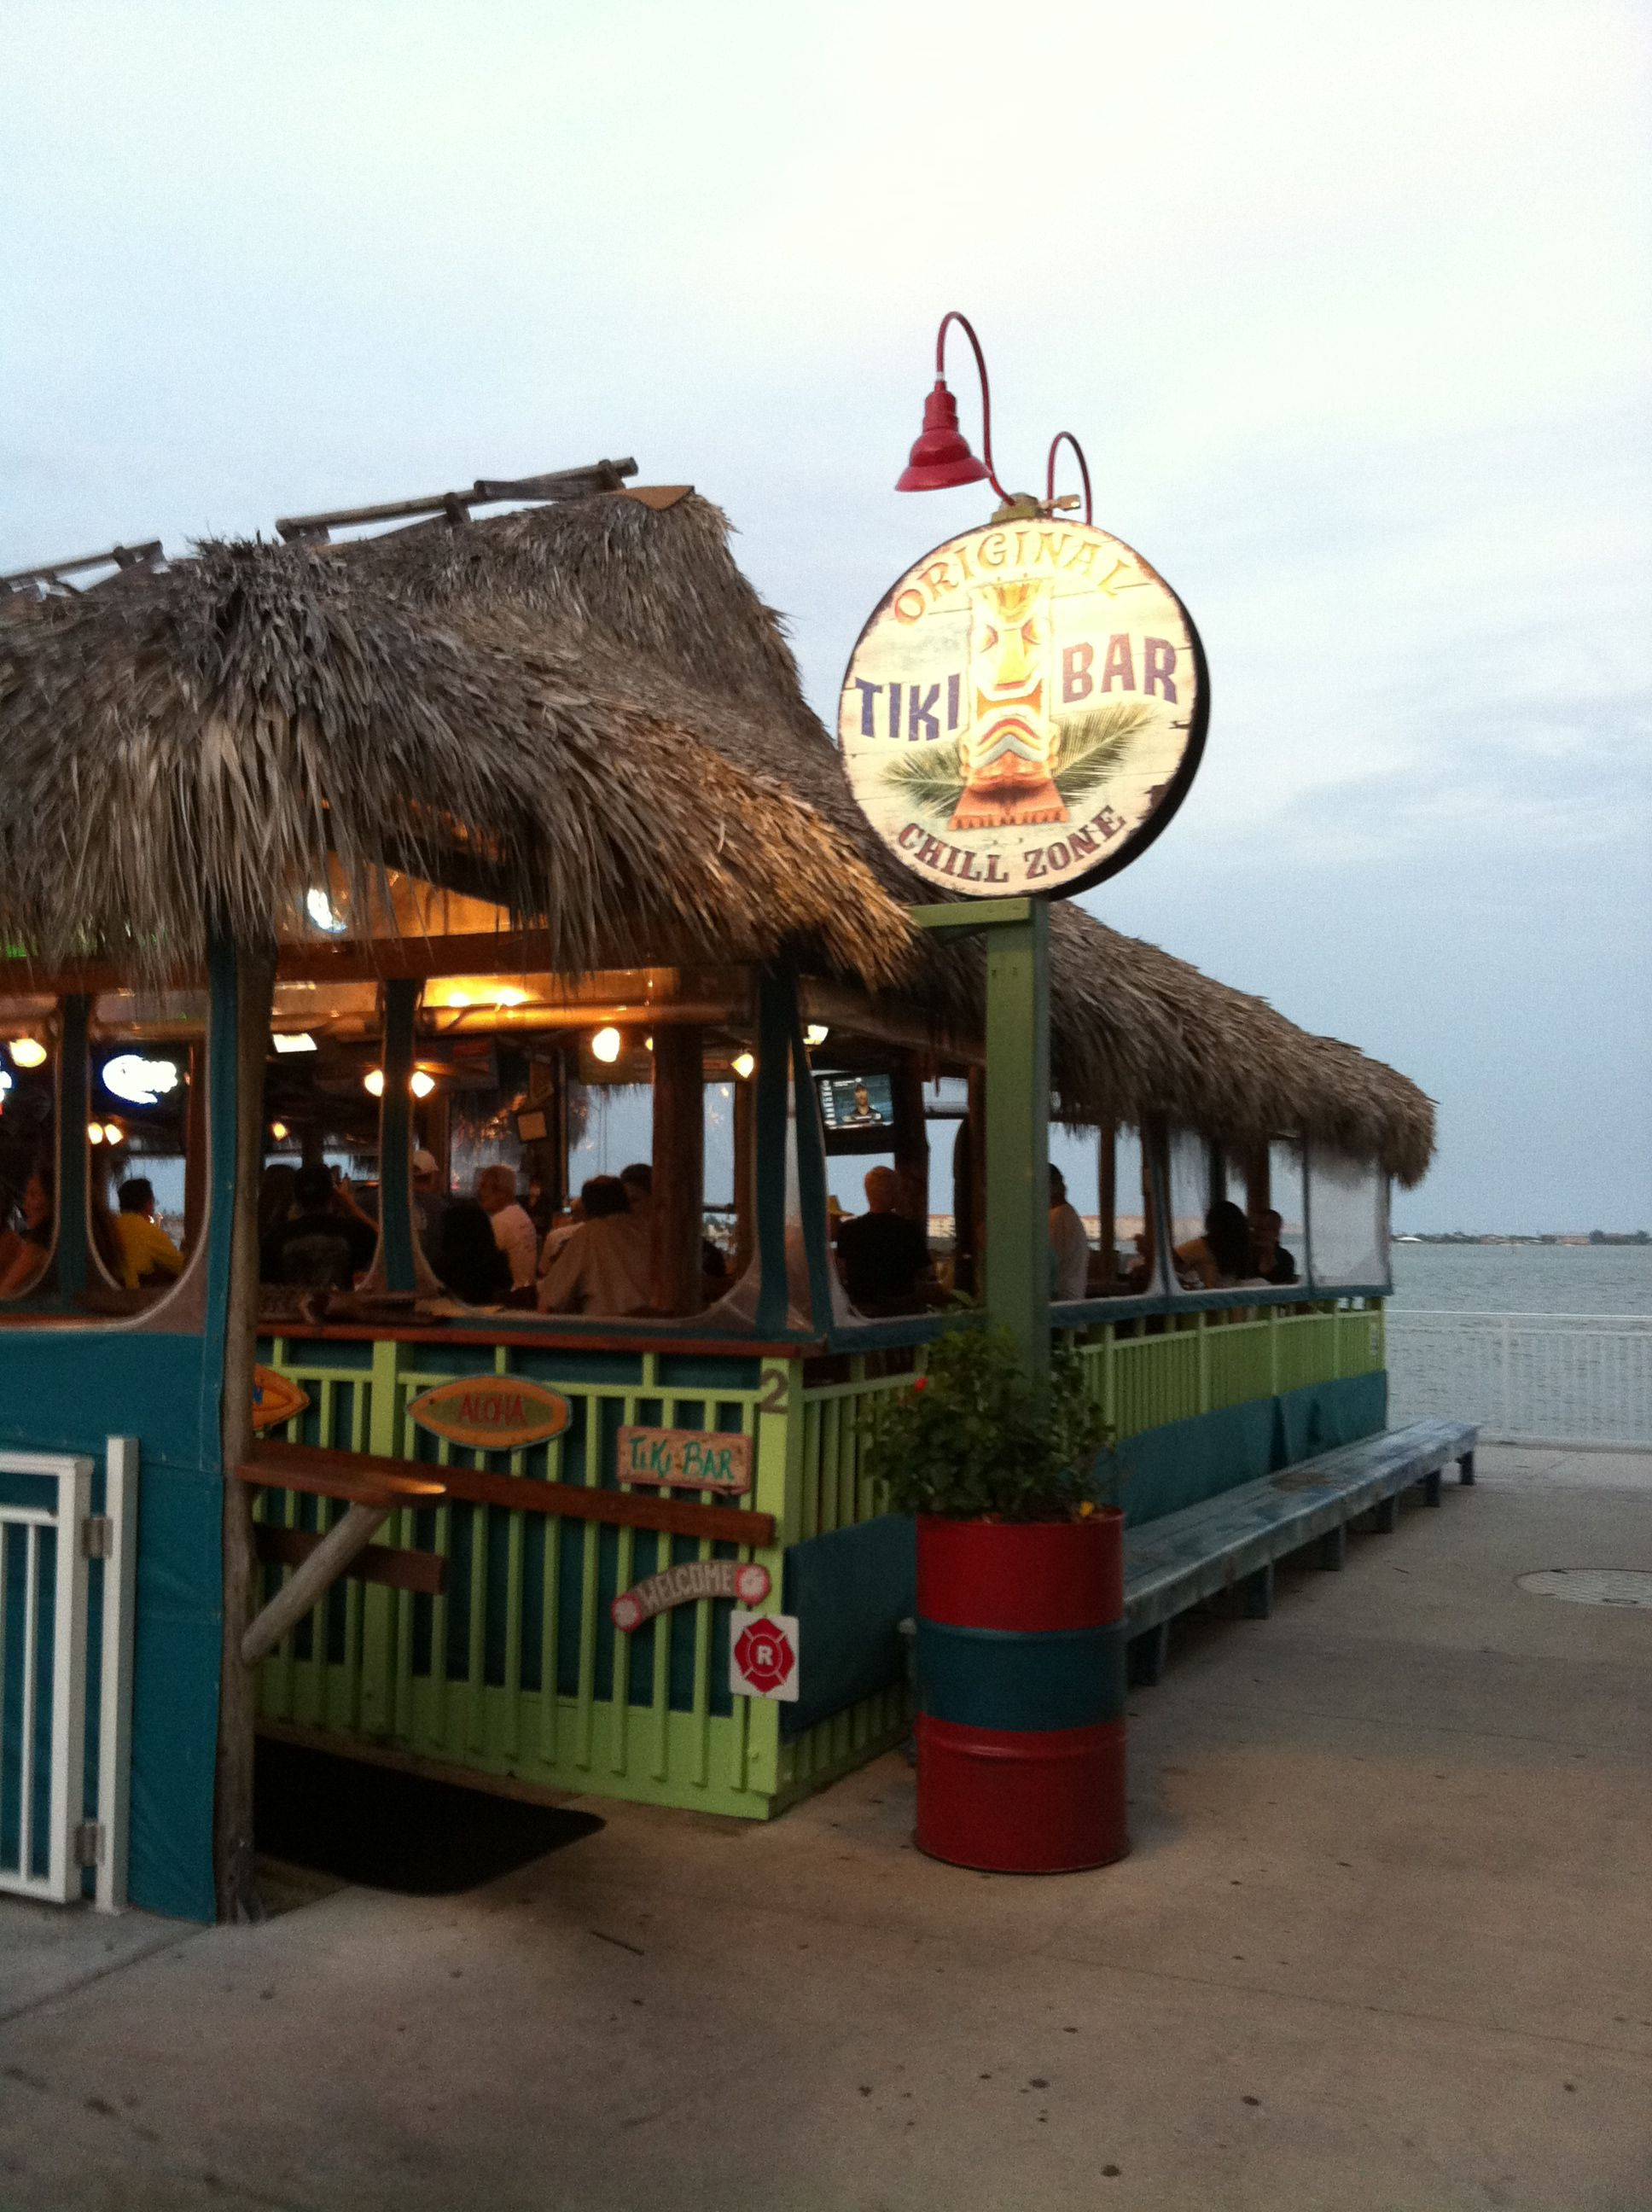 The Original Tiki Restaurant Downtown Fort Pierce Fl Photo By Marcy Brennan Been Here Several Times Florida East Coast Vero Beach Florida Vero Beach Fl